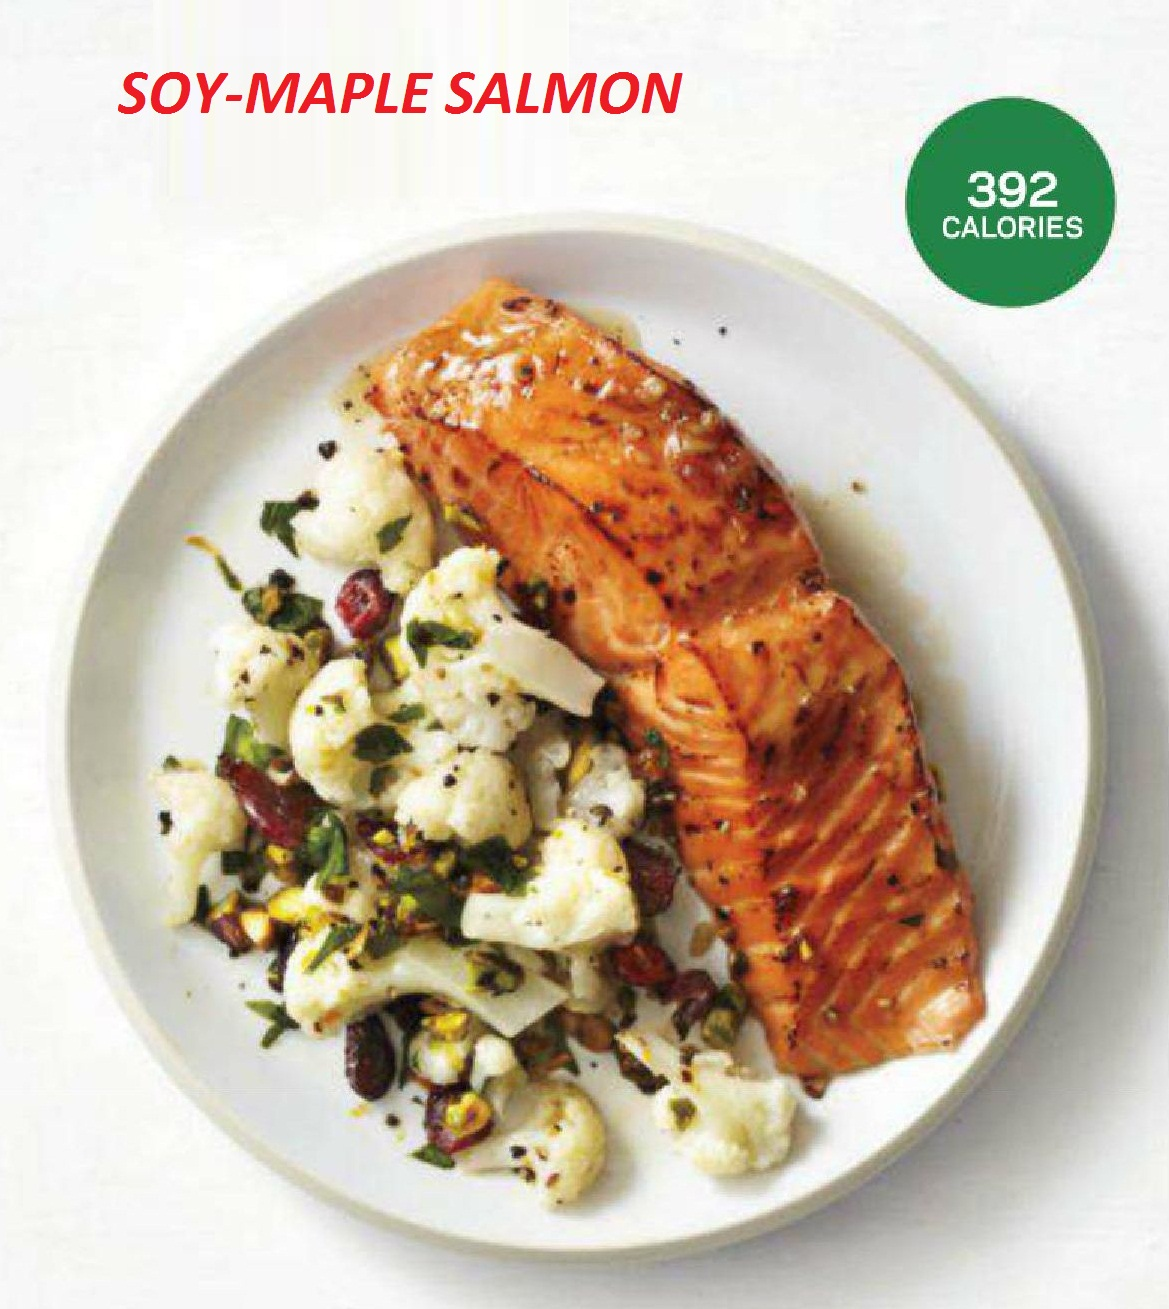 Soy maple salmon healthy fish recipe 392 calories how for Healthy fish recipes